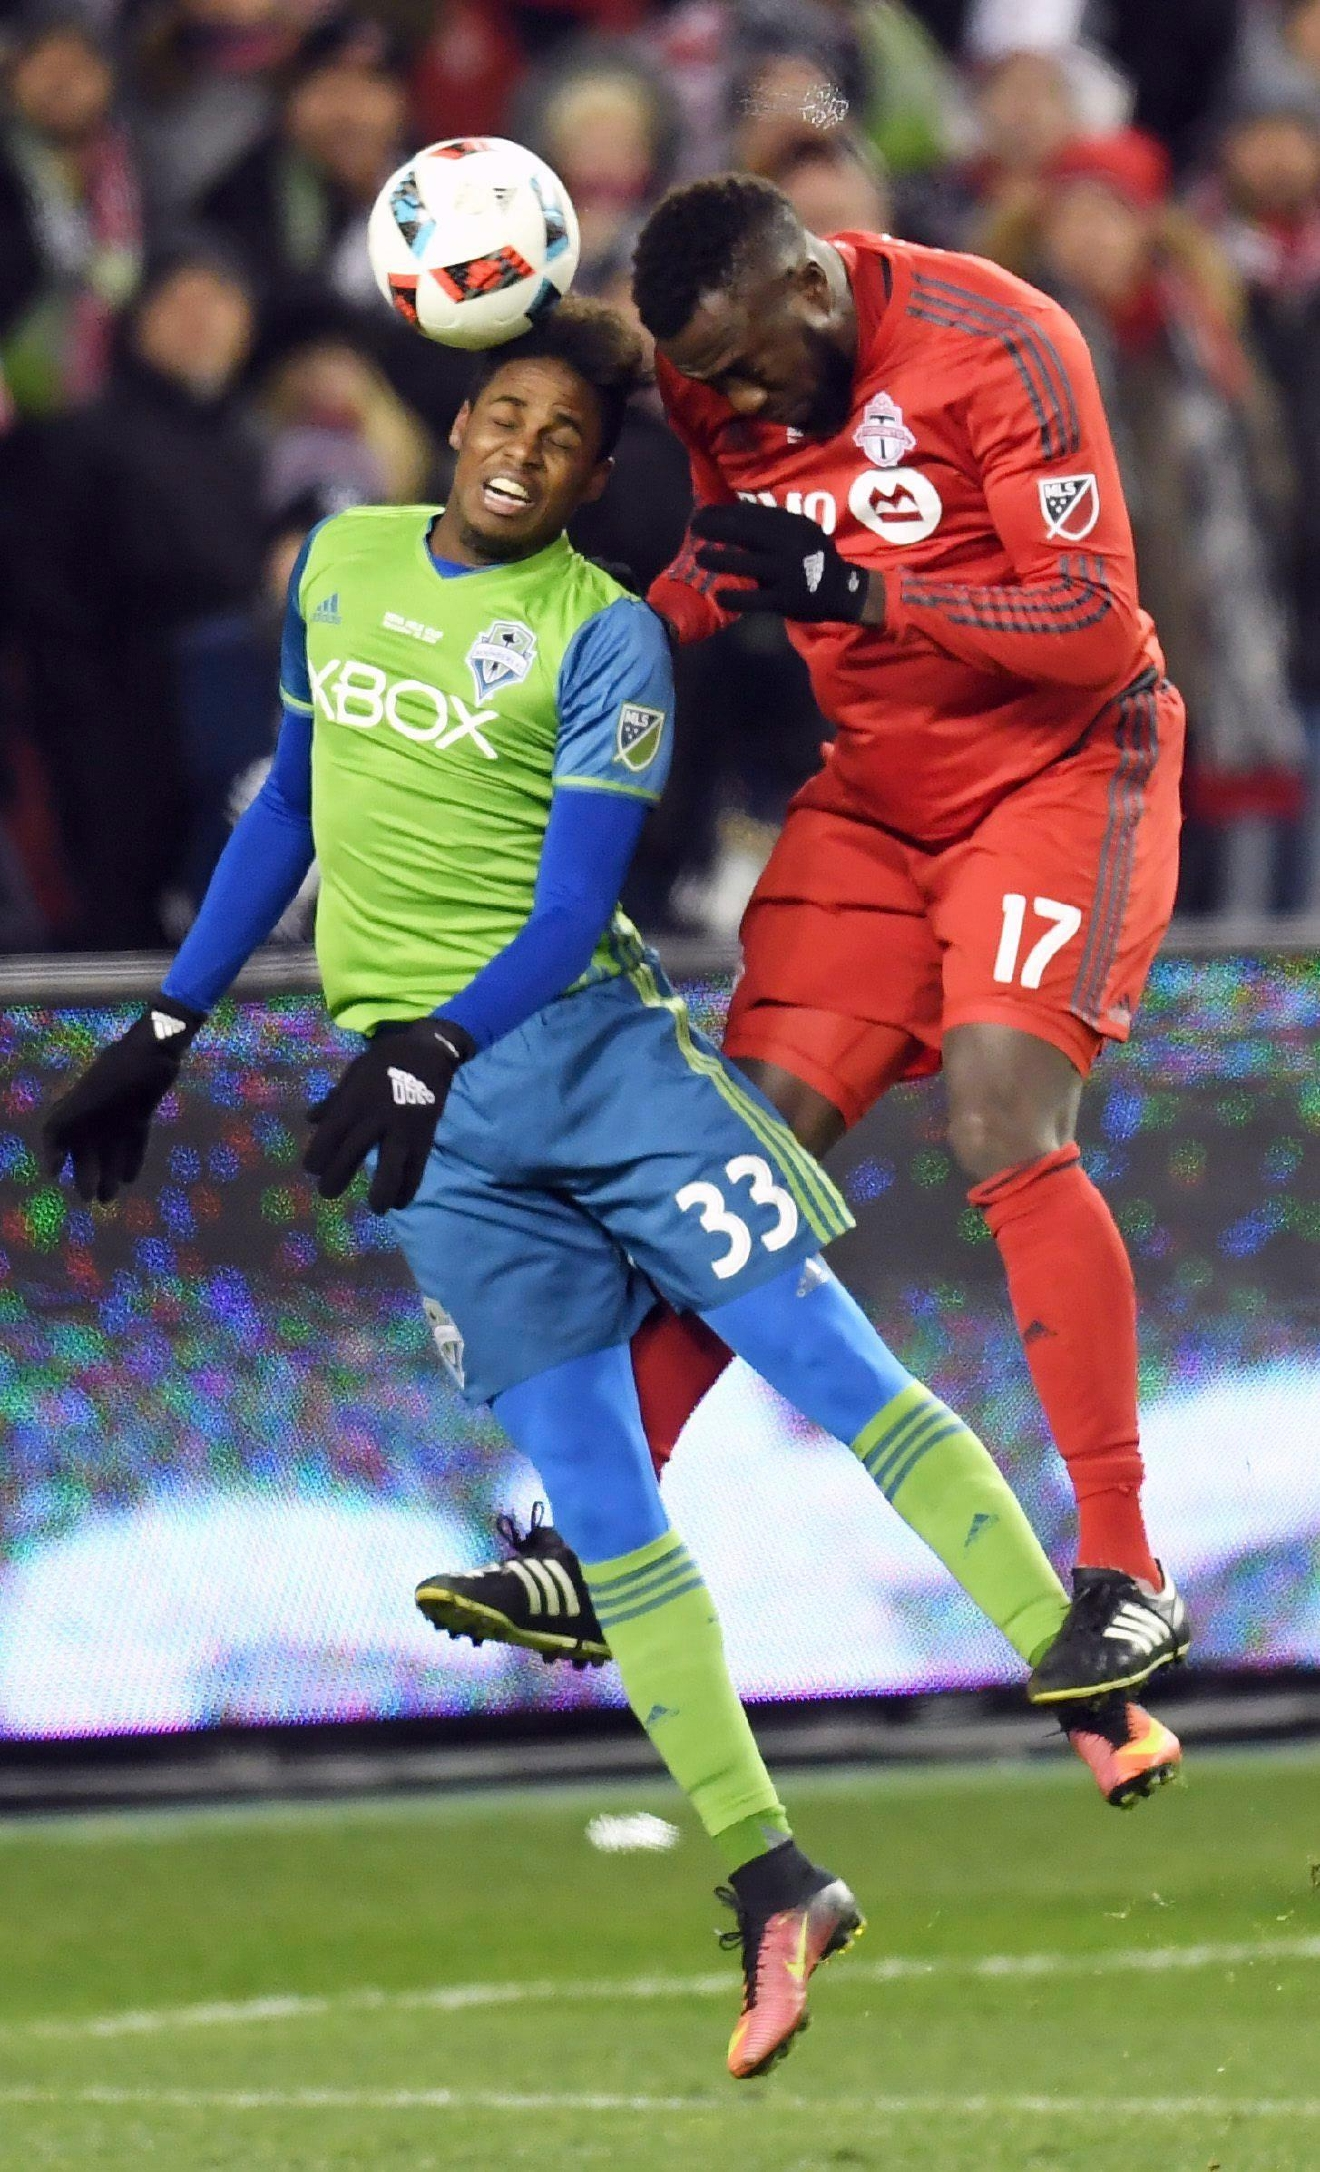 Toronto FC forward Jozy Altidore (17) heads the ball as Seattle Sounders defender Joevin Jones (33) defends during first-half MLS Cup final soccer action in Toronto, Saturday, Dec. 10, 2016. (Frank Gunn/The Canadian Press via AP)